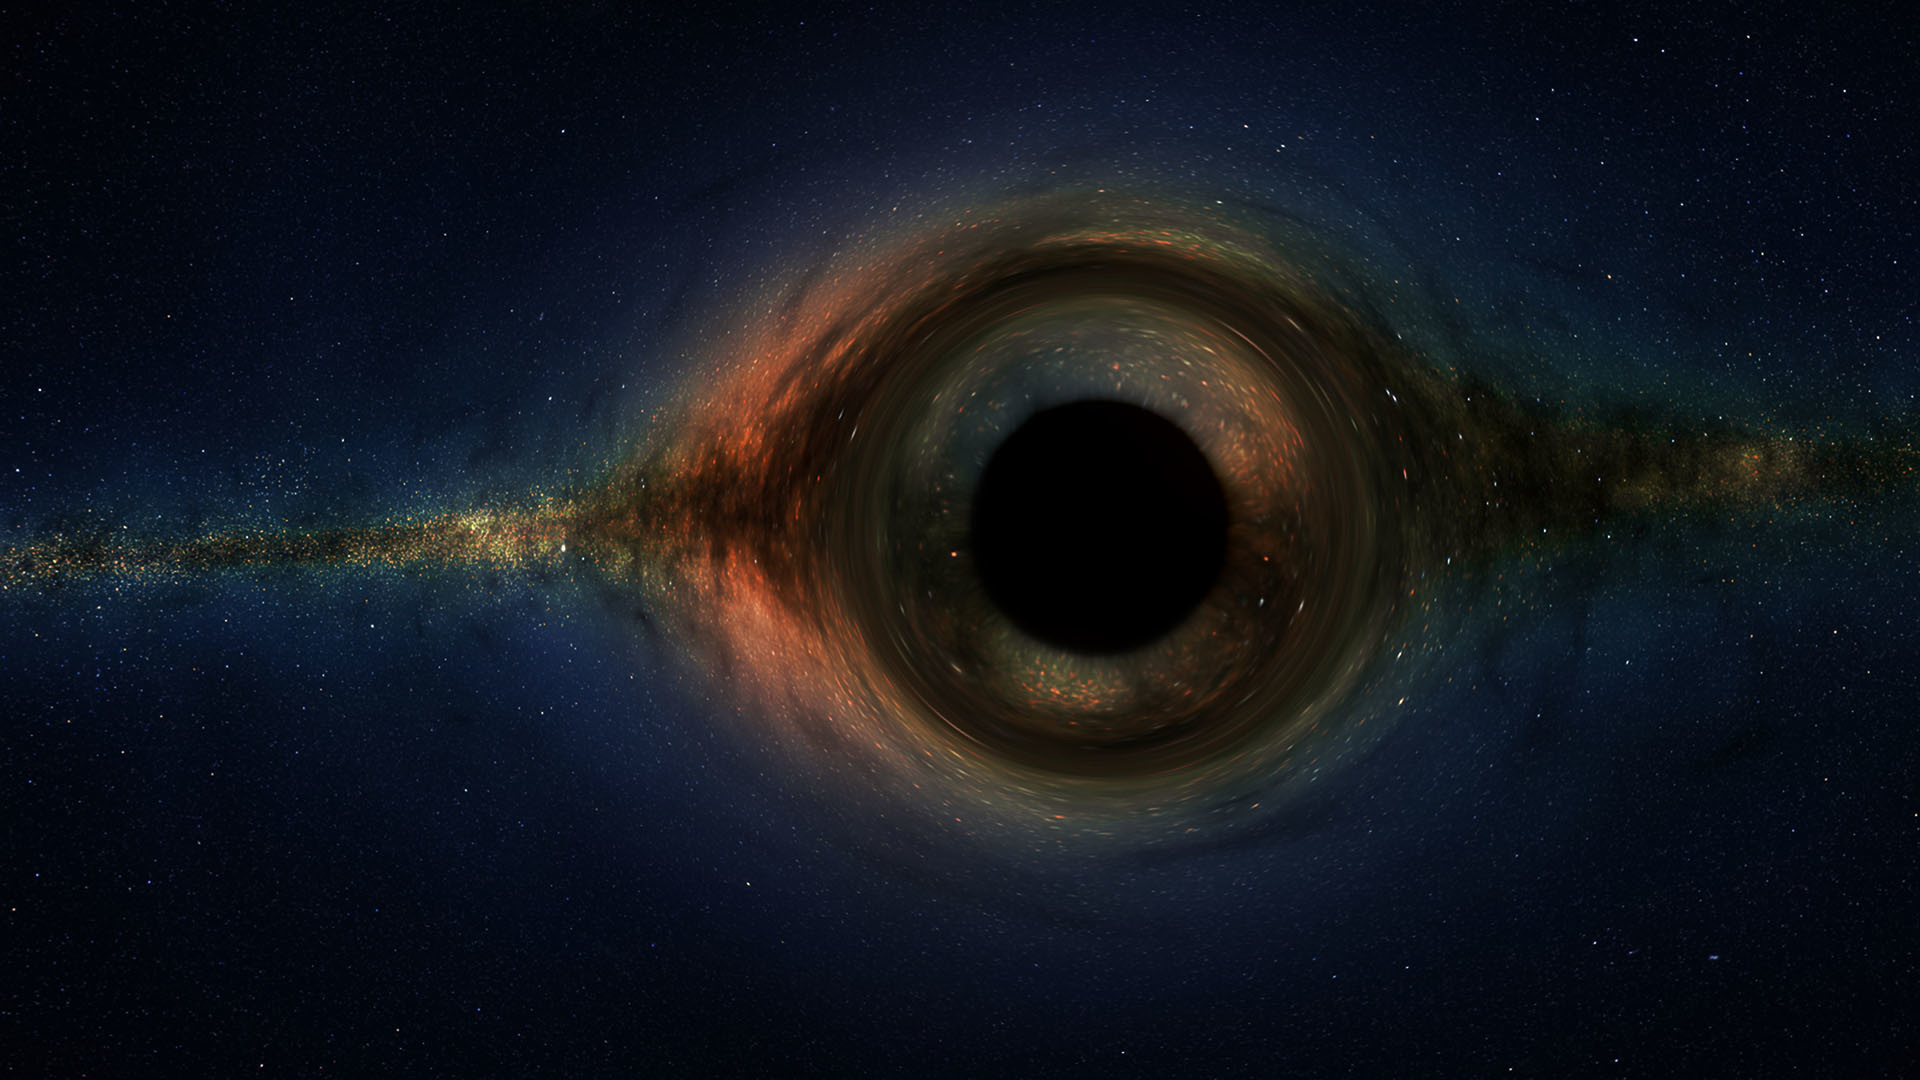 Wallpaper Black Hole Posted By John Sellers